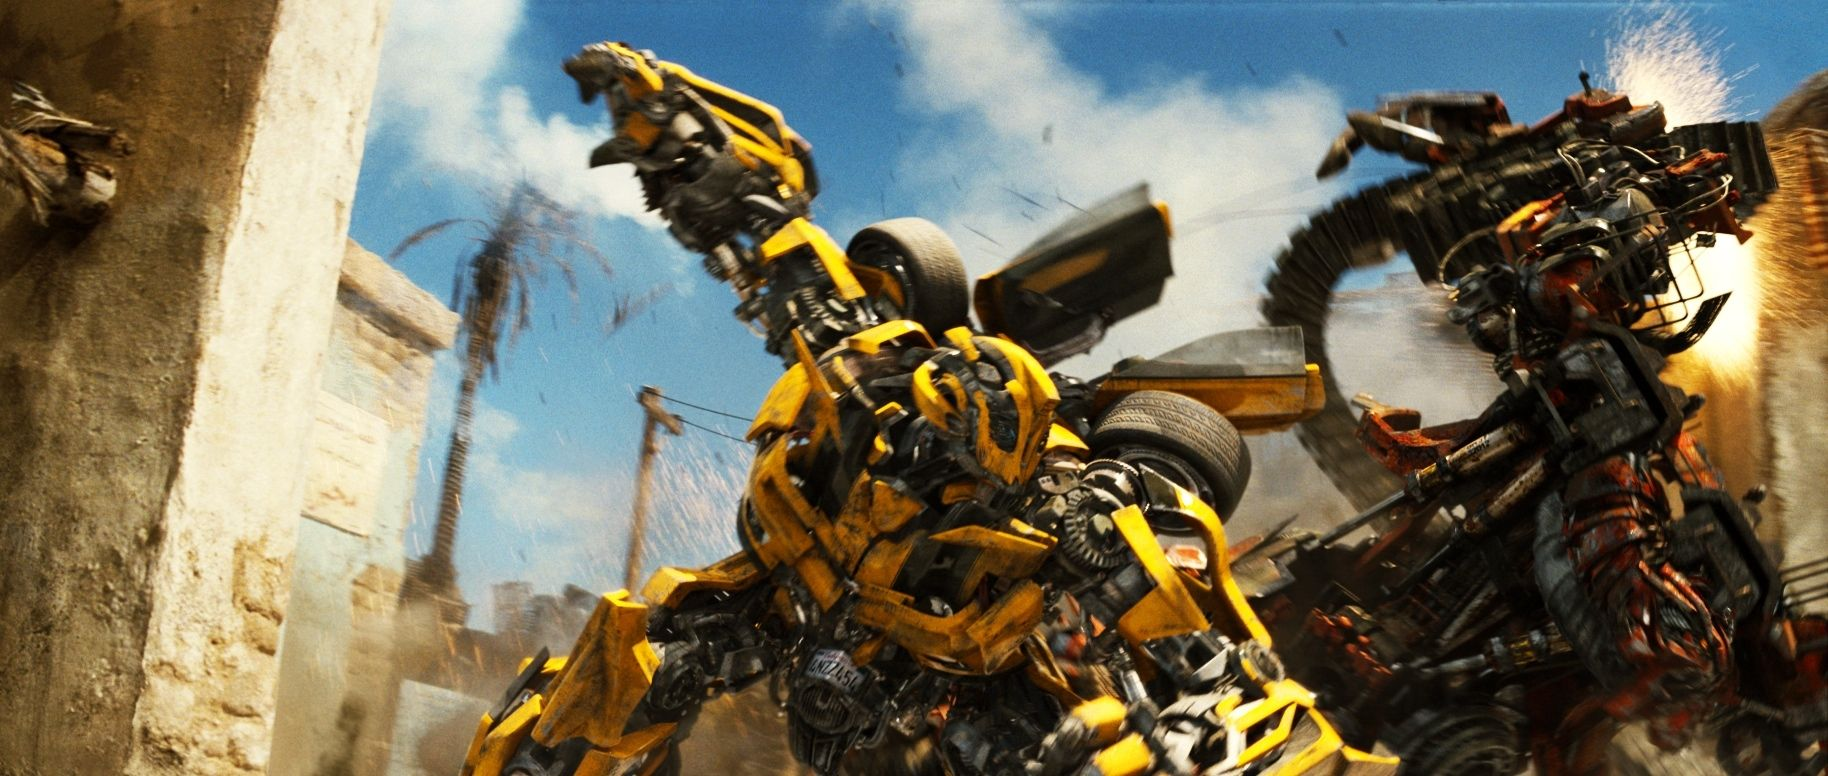 transfomres 2 bumblebee fight Michael Bay: Jury Still Out on Transformers 3 In 3D